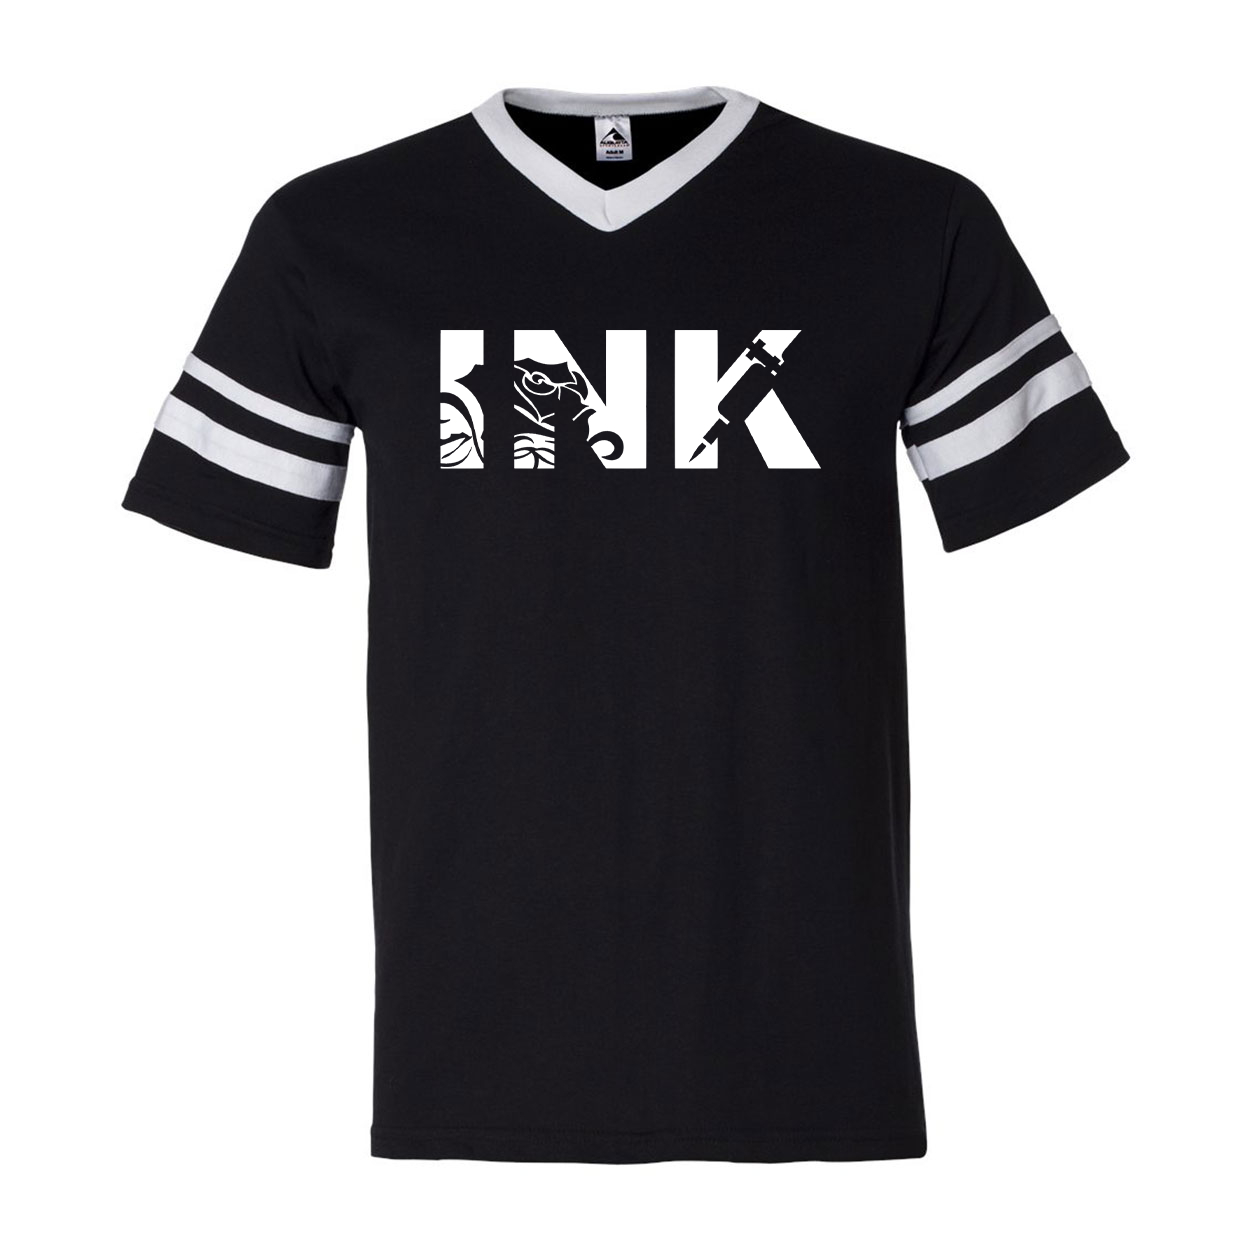 Ink Tattoo Logo Classic Premium Striped Jersey T-Shirt Black/White (White Logo)